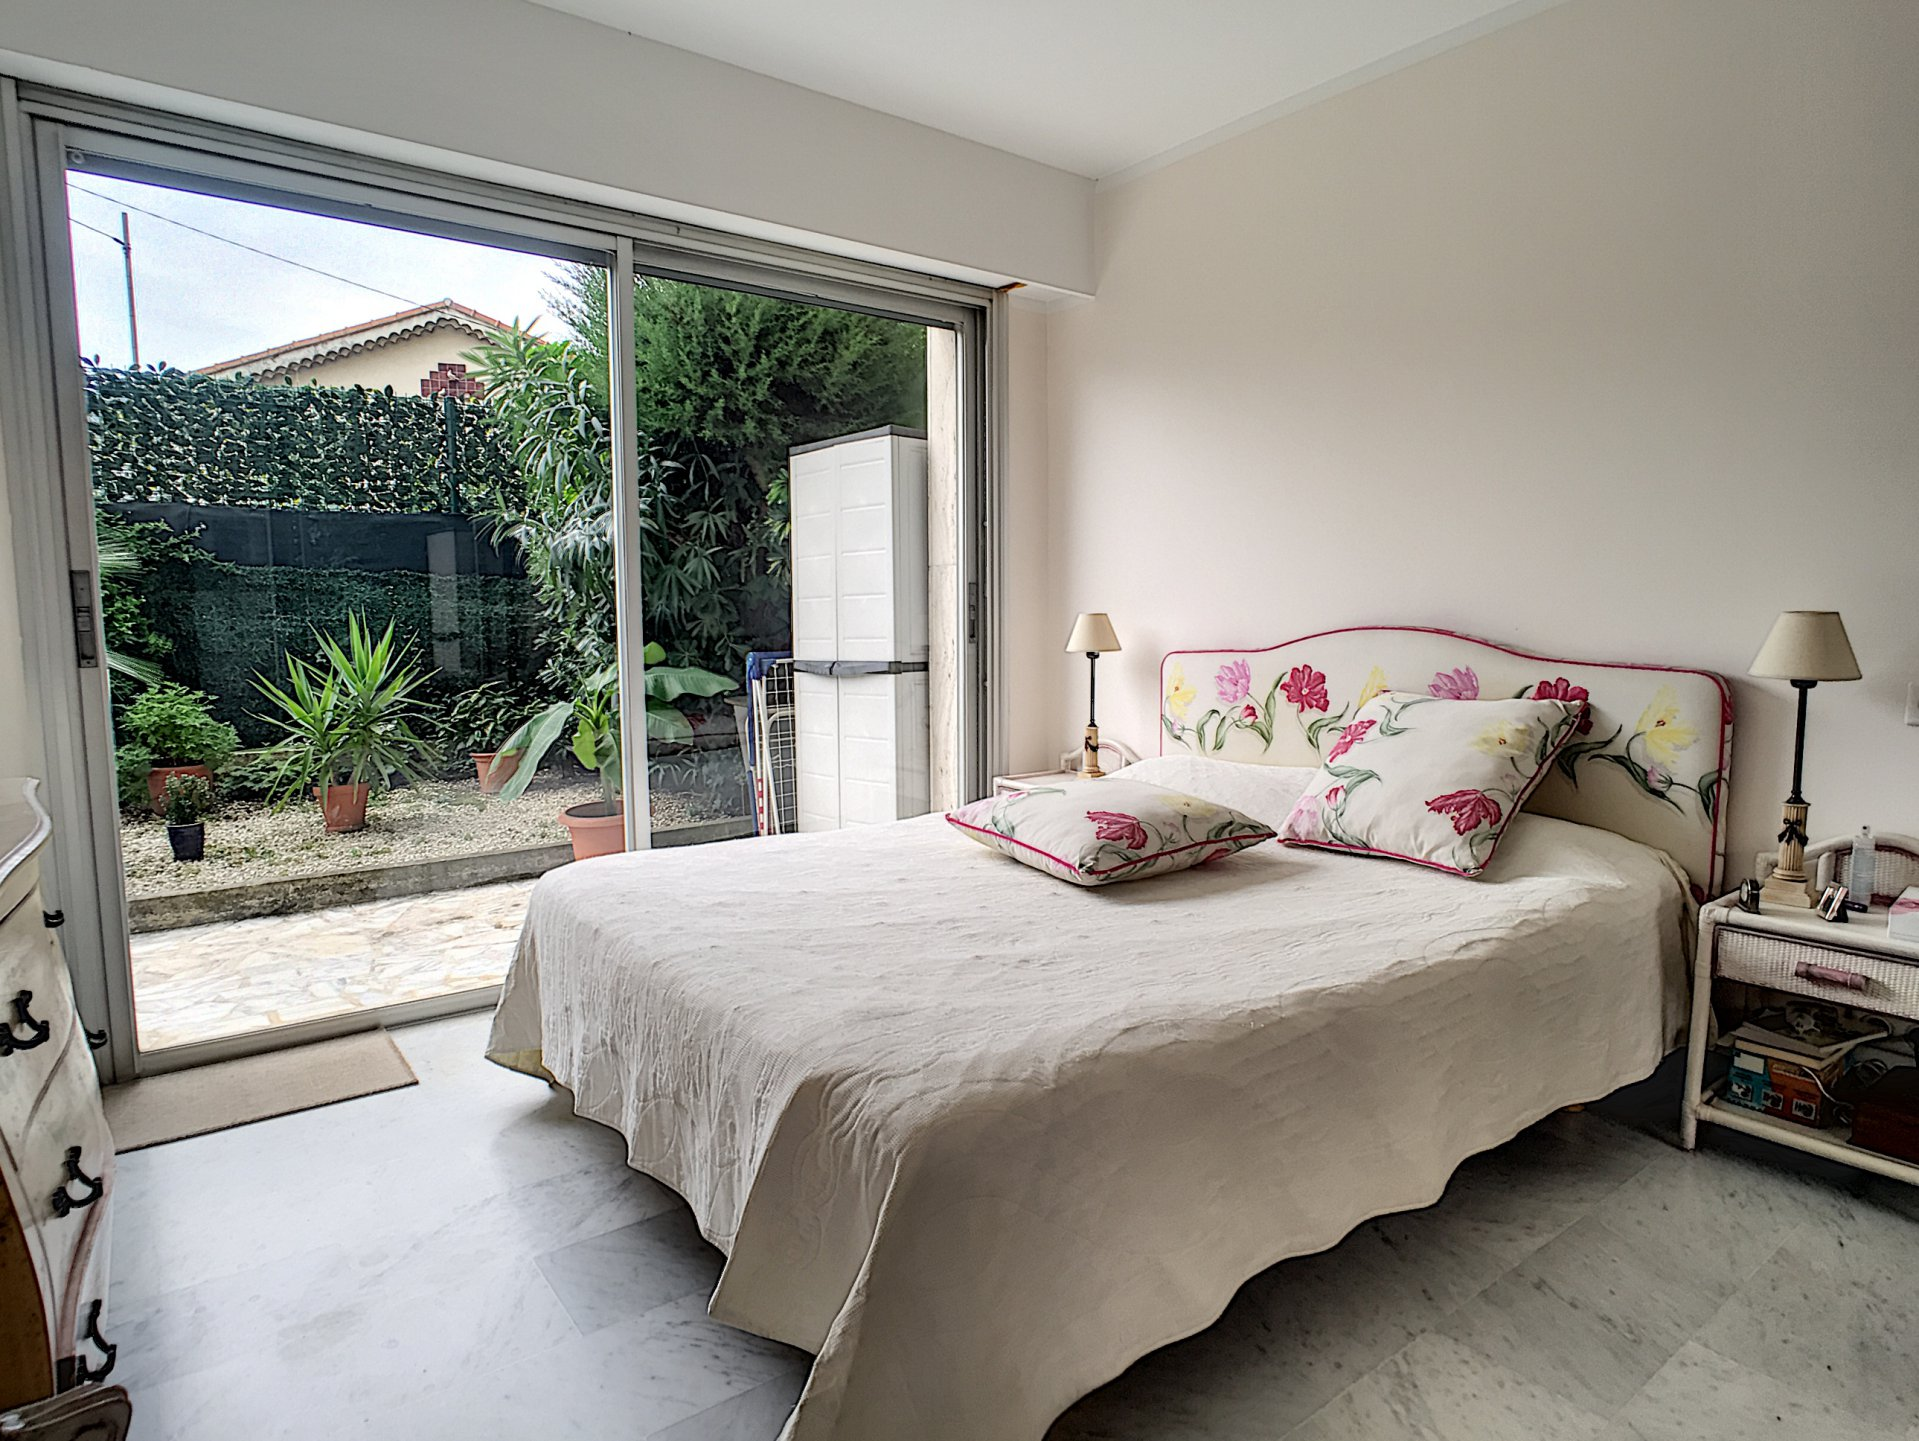 Le Cannet Mairie -  rooms of 54 sqm with garden